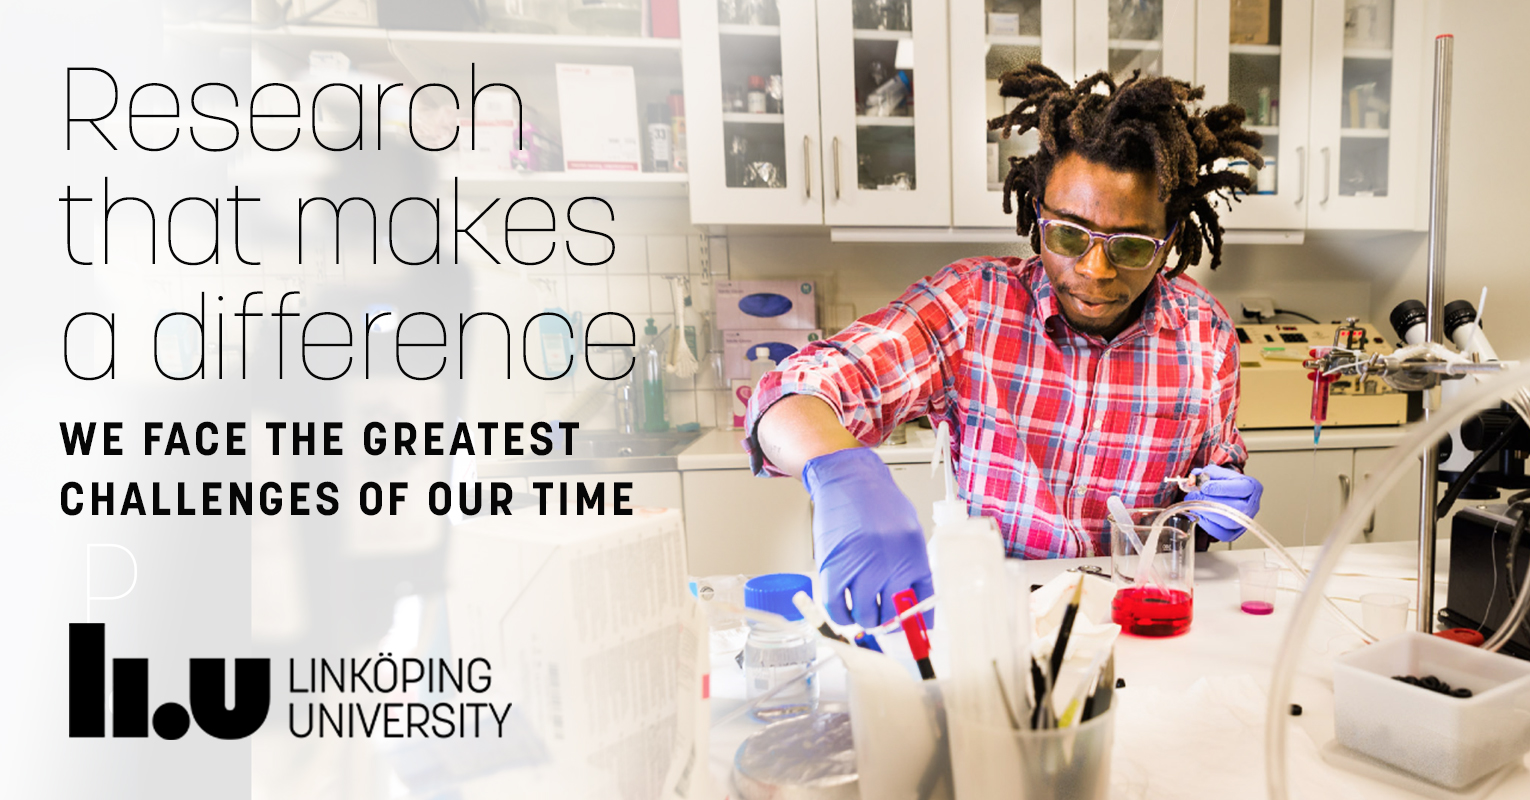 Research that makes a difference. We face the greatest challenges of our time.